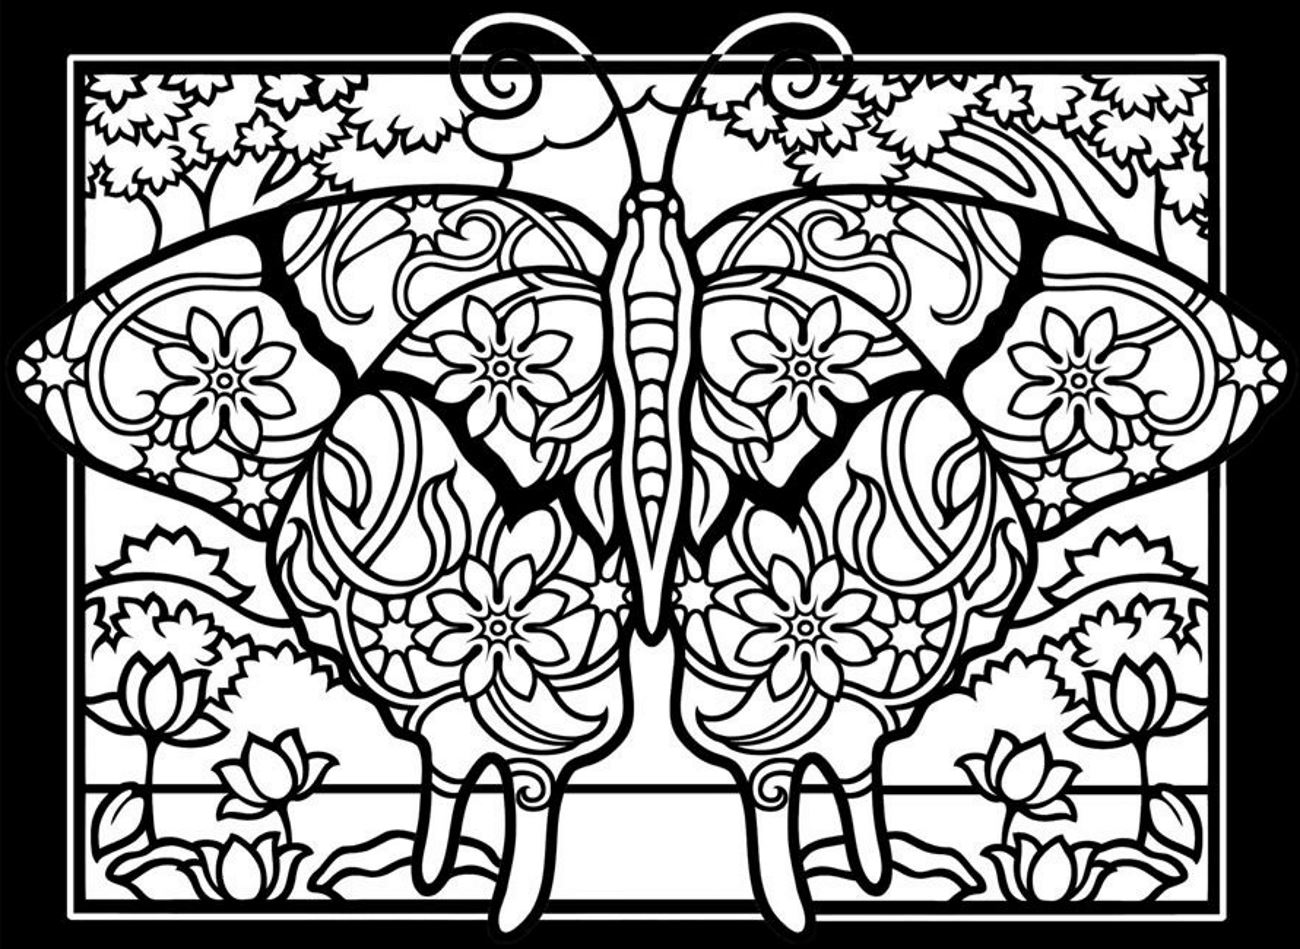 Insects Coloring pages for adults